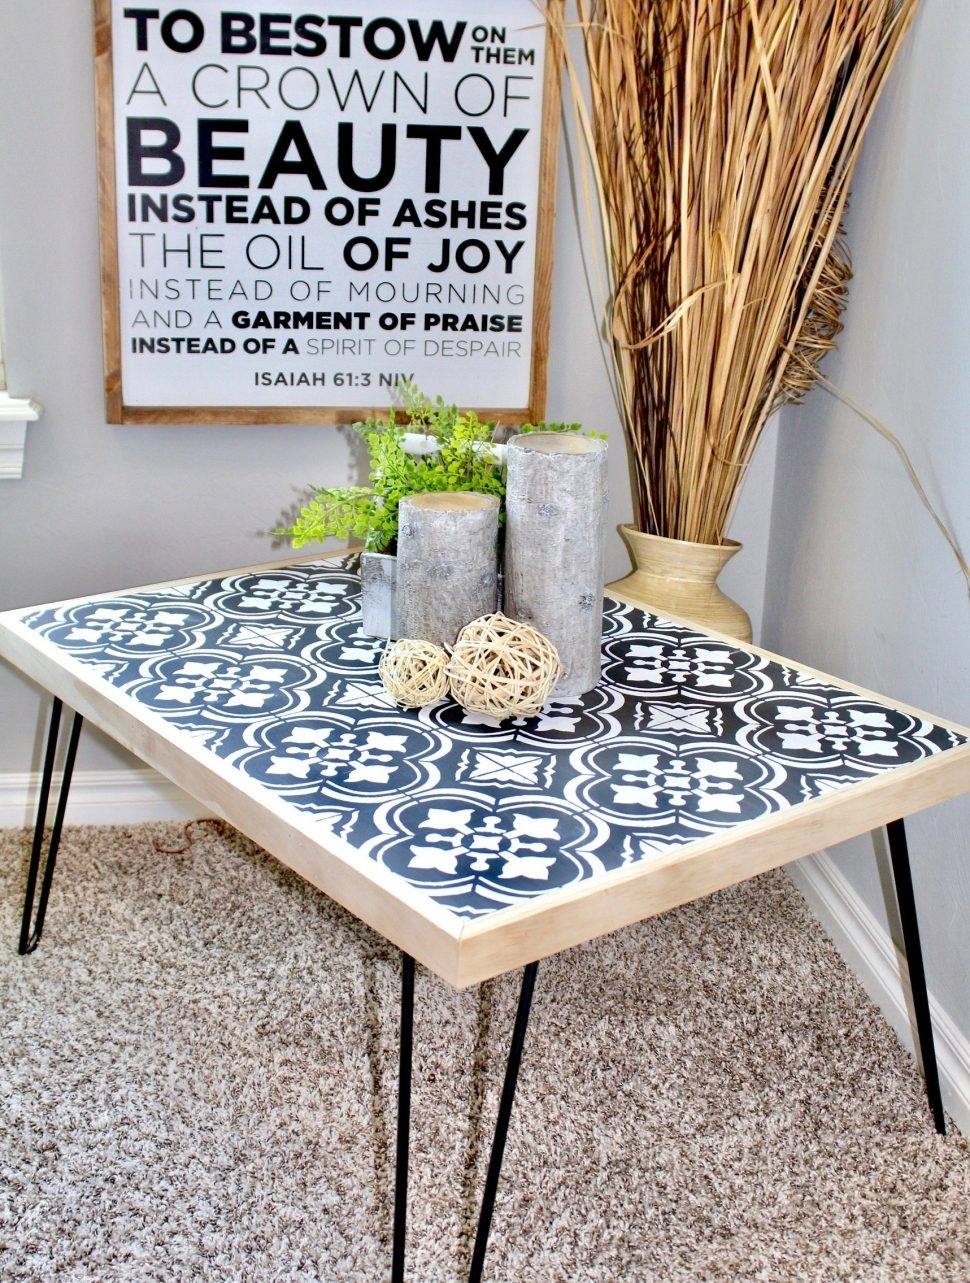 Furniture : Diy Hairpin Coffee Table With Stenciled Tile Handmade with regard to Haven Coffee Tables (Image 11 of 30)